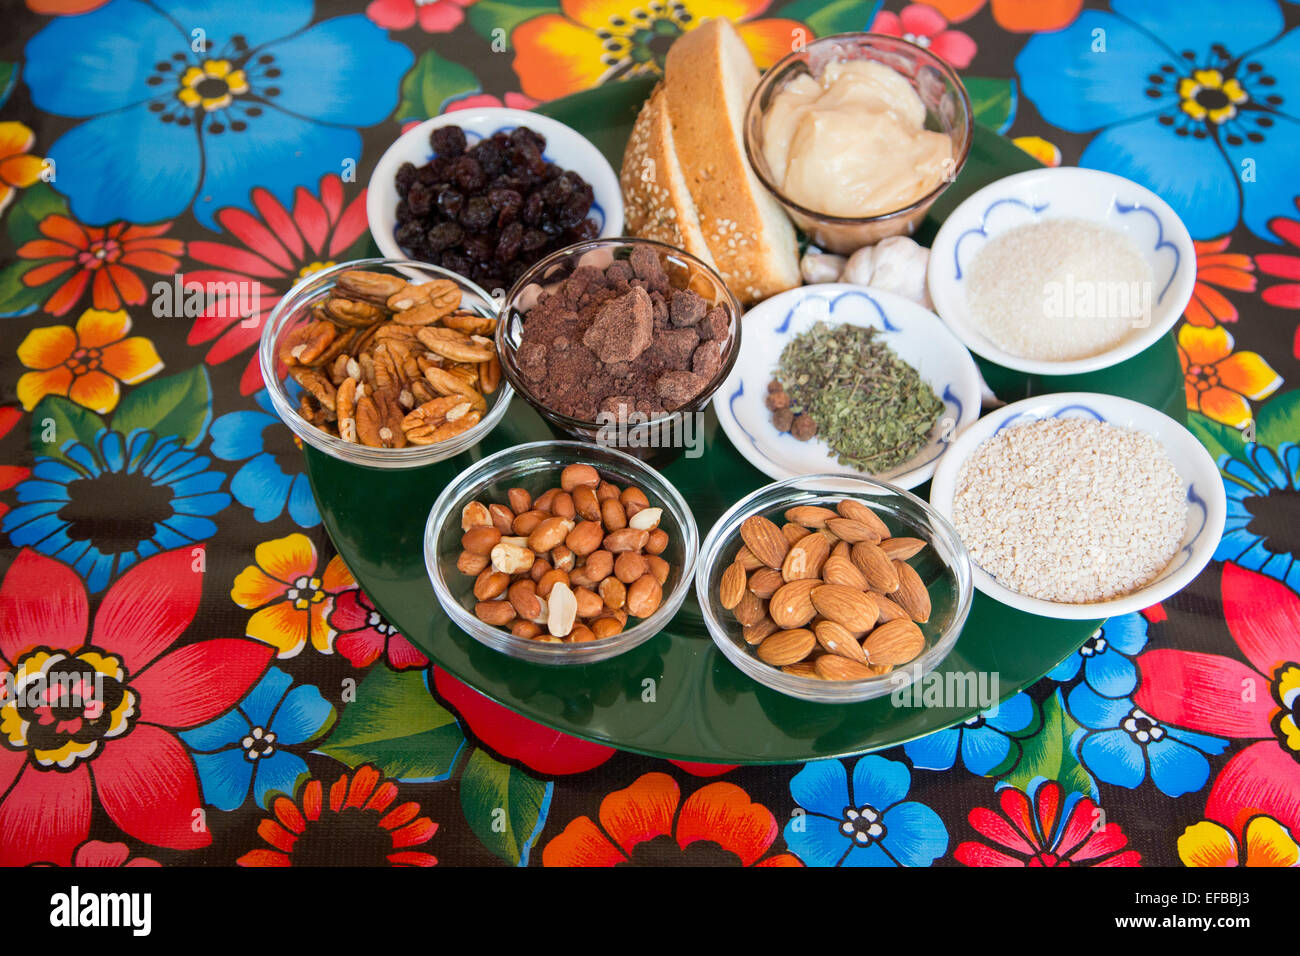 Oaxaca, Mexico - Some of the ingredients used in making mole negro in a cooking class. - Stock Image